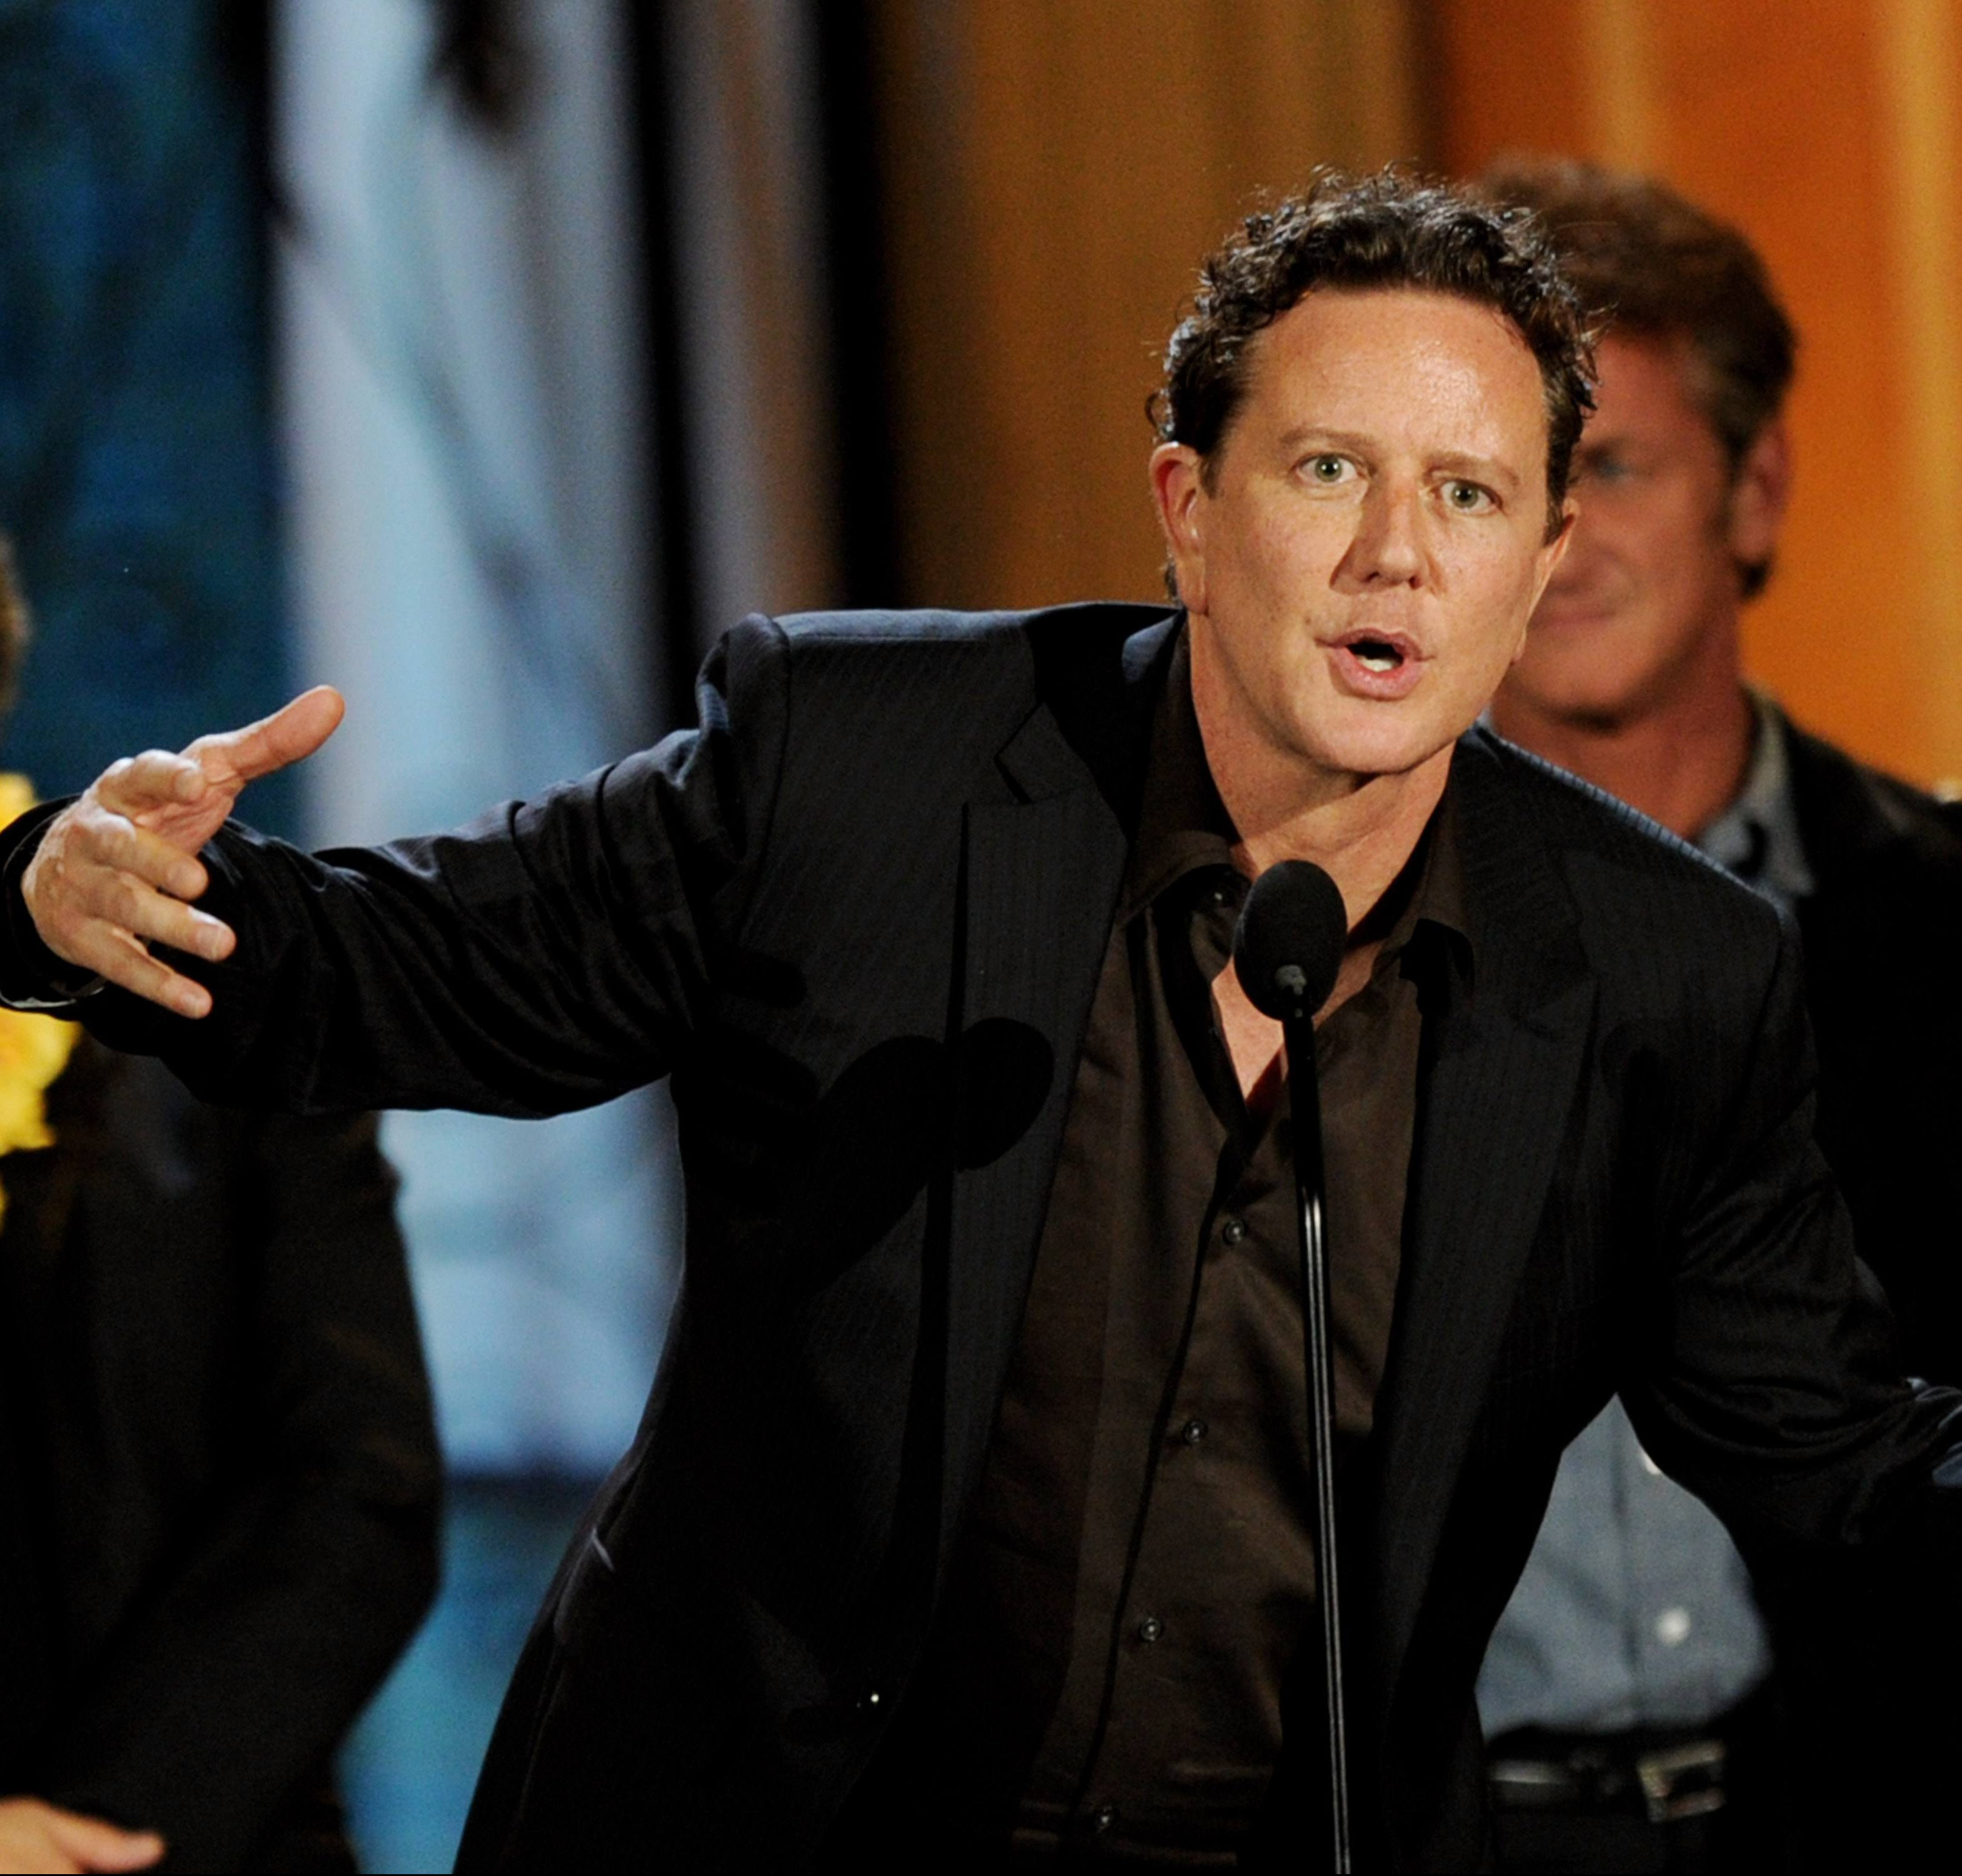 8 12 scaled e1602499225647 Judge Reinhold: How He Got The Name 'Judge' And More You Never Knew About The 80s Star